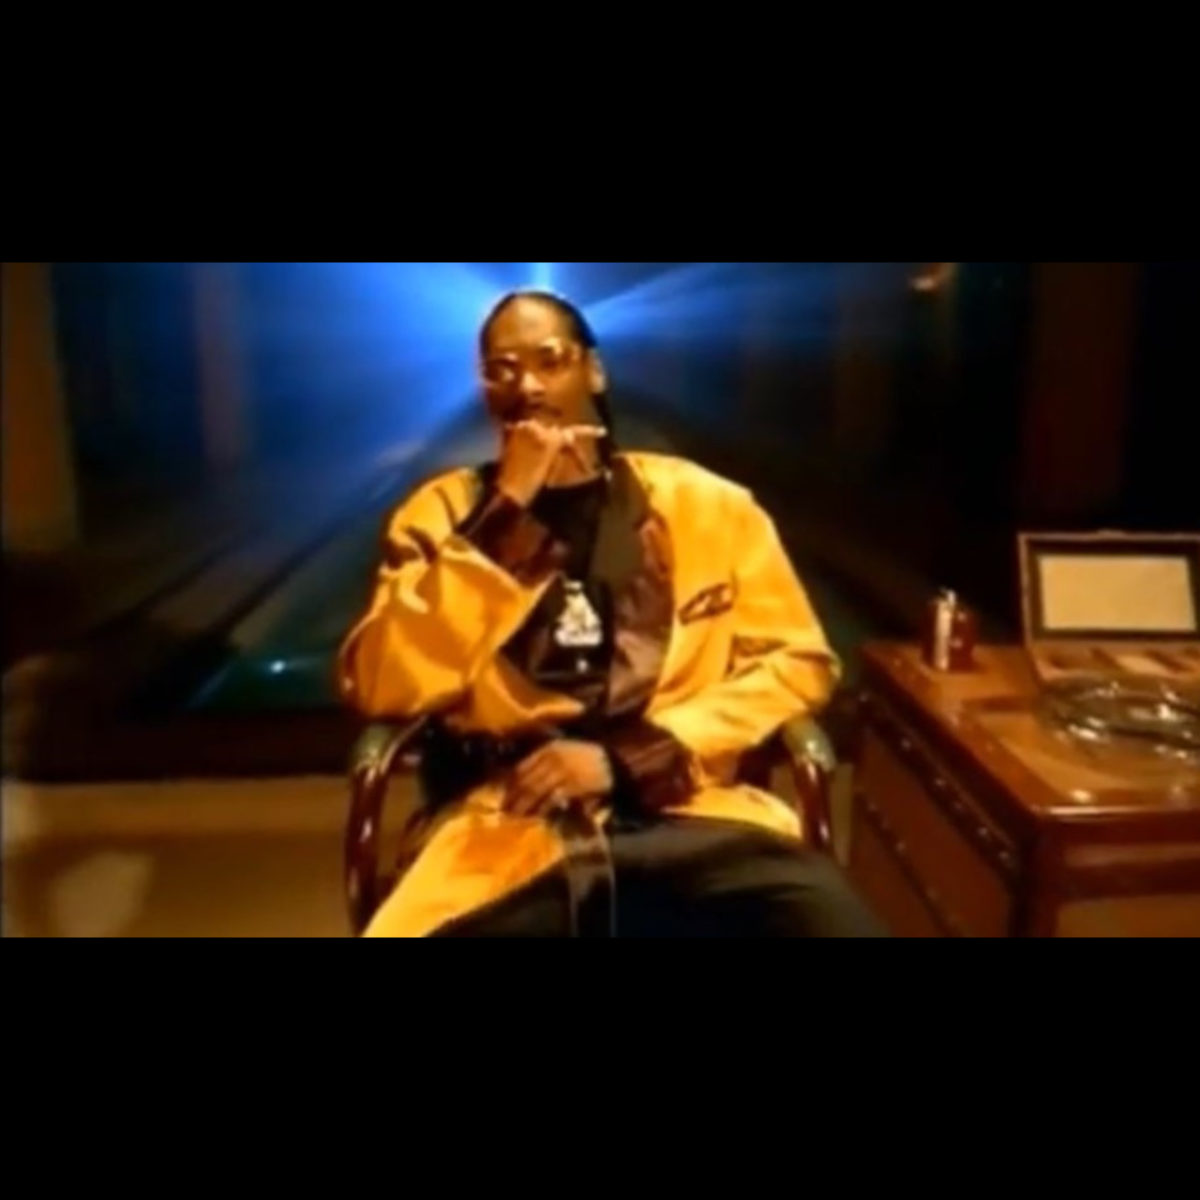 2Pac and Snoop Doggy Dogg - Wanted Dead Or Alive (Thumbnail)